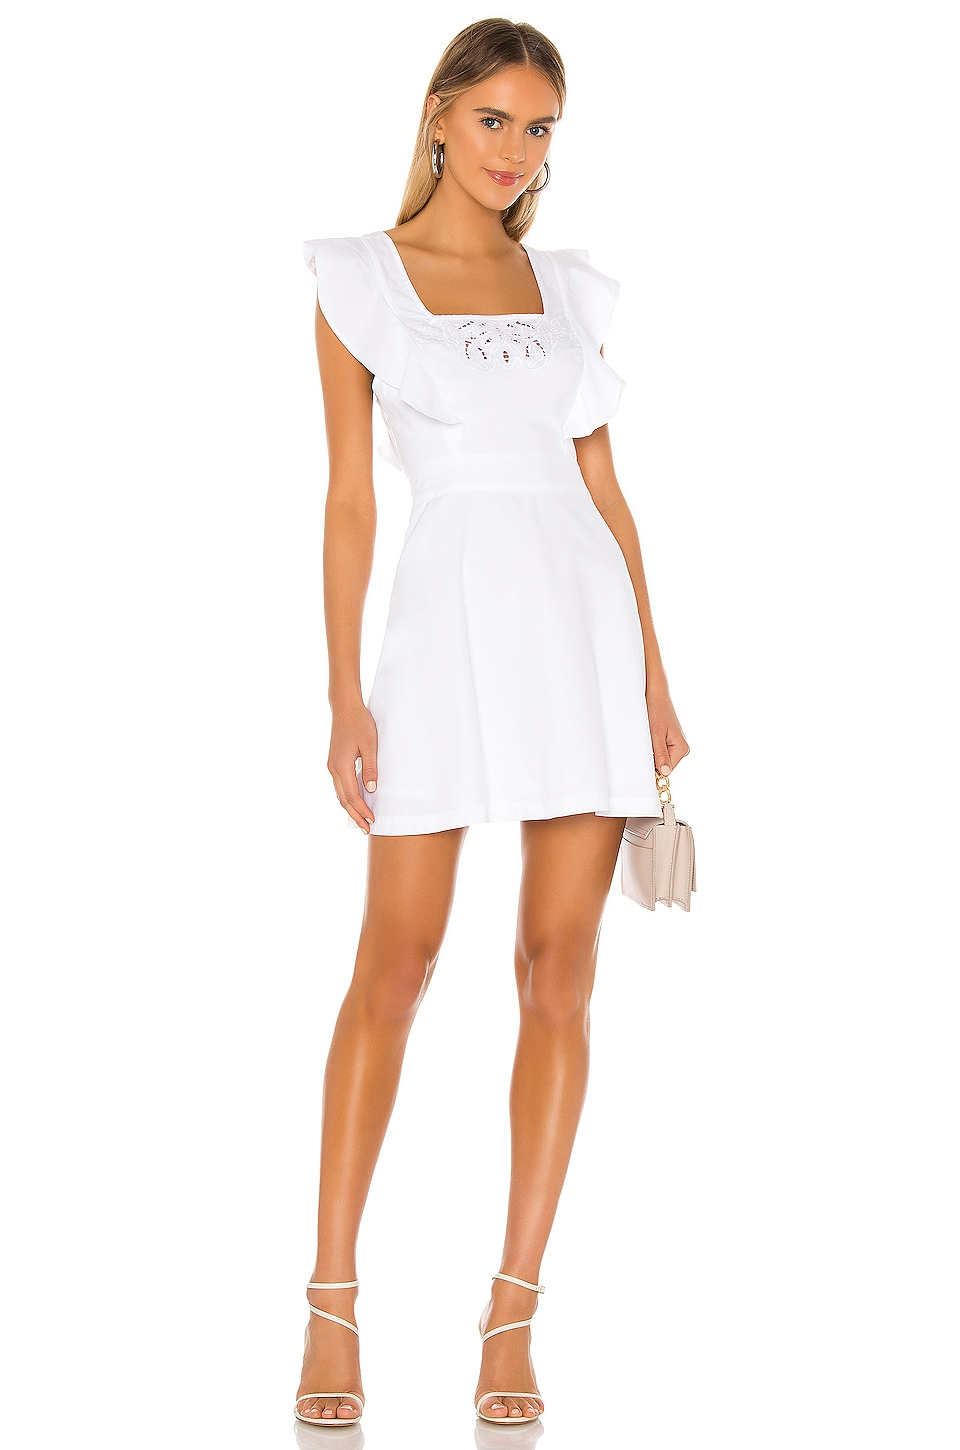 Tie Back Dress             BCBGeneration                                                                                                       CA$ 165.70 13